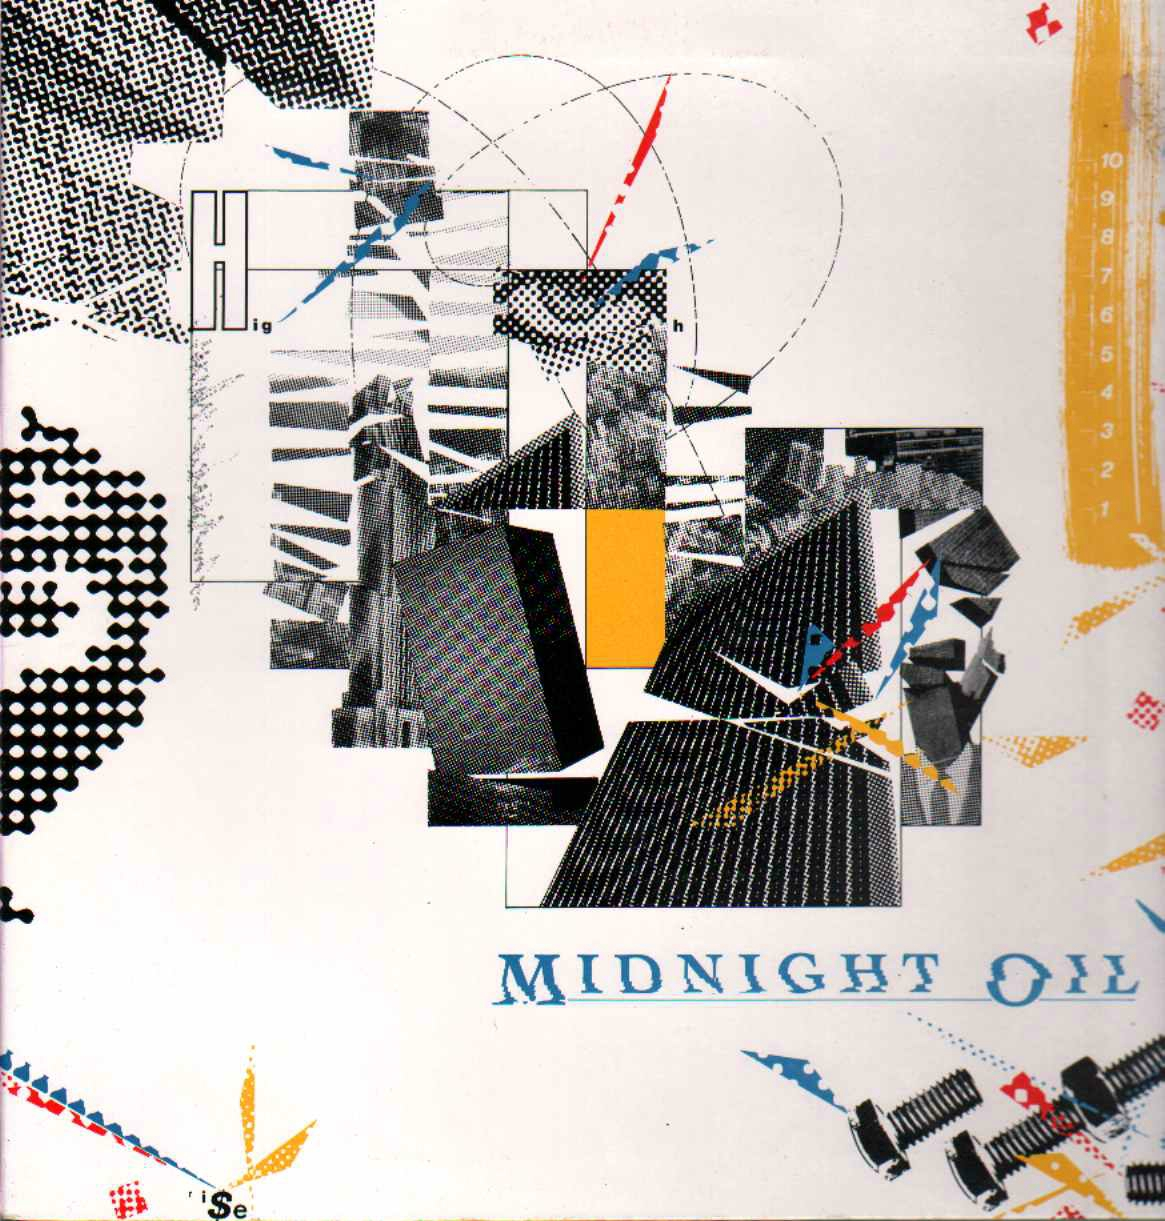 Midnight Oil - Read about it